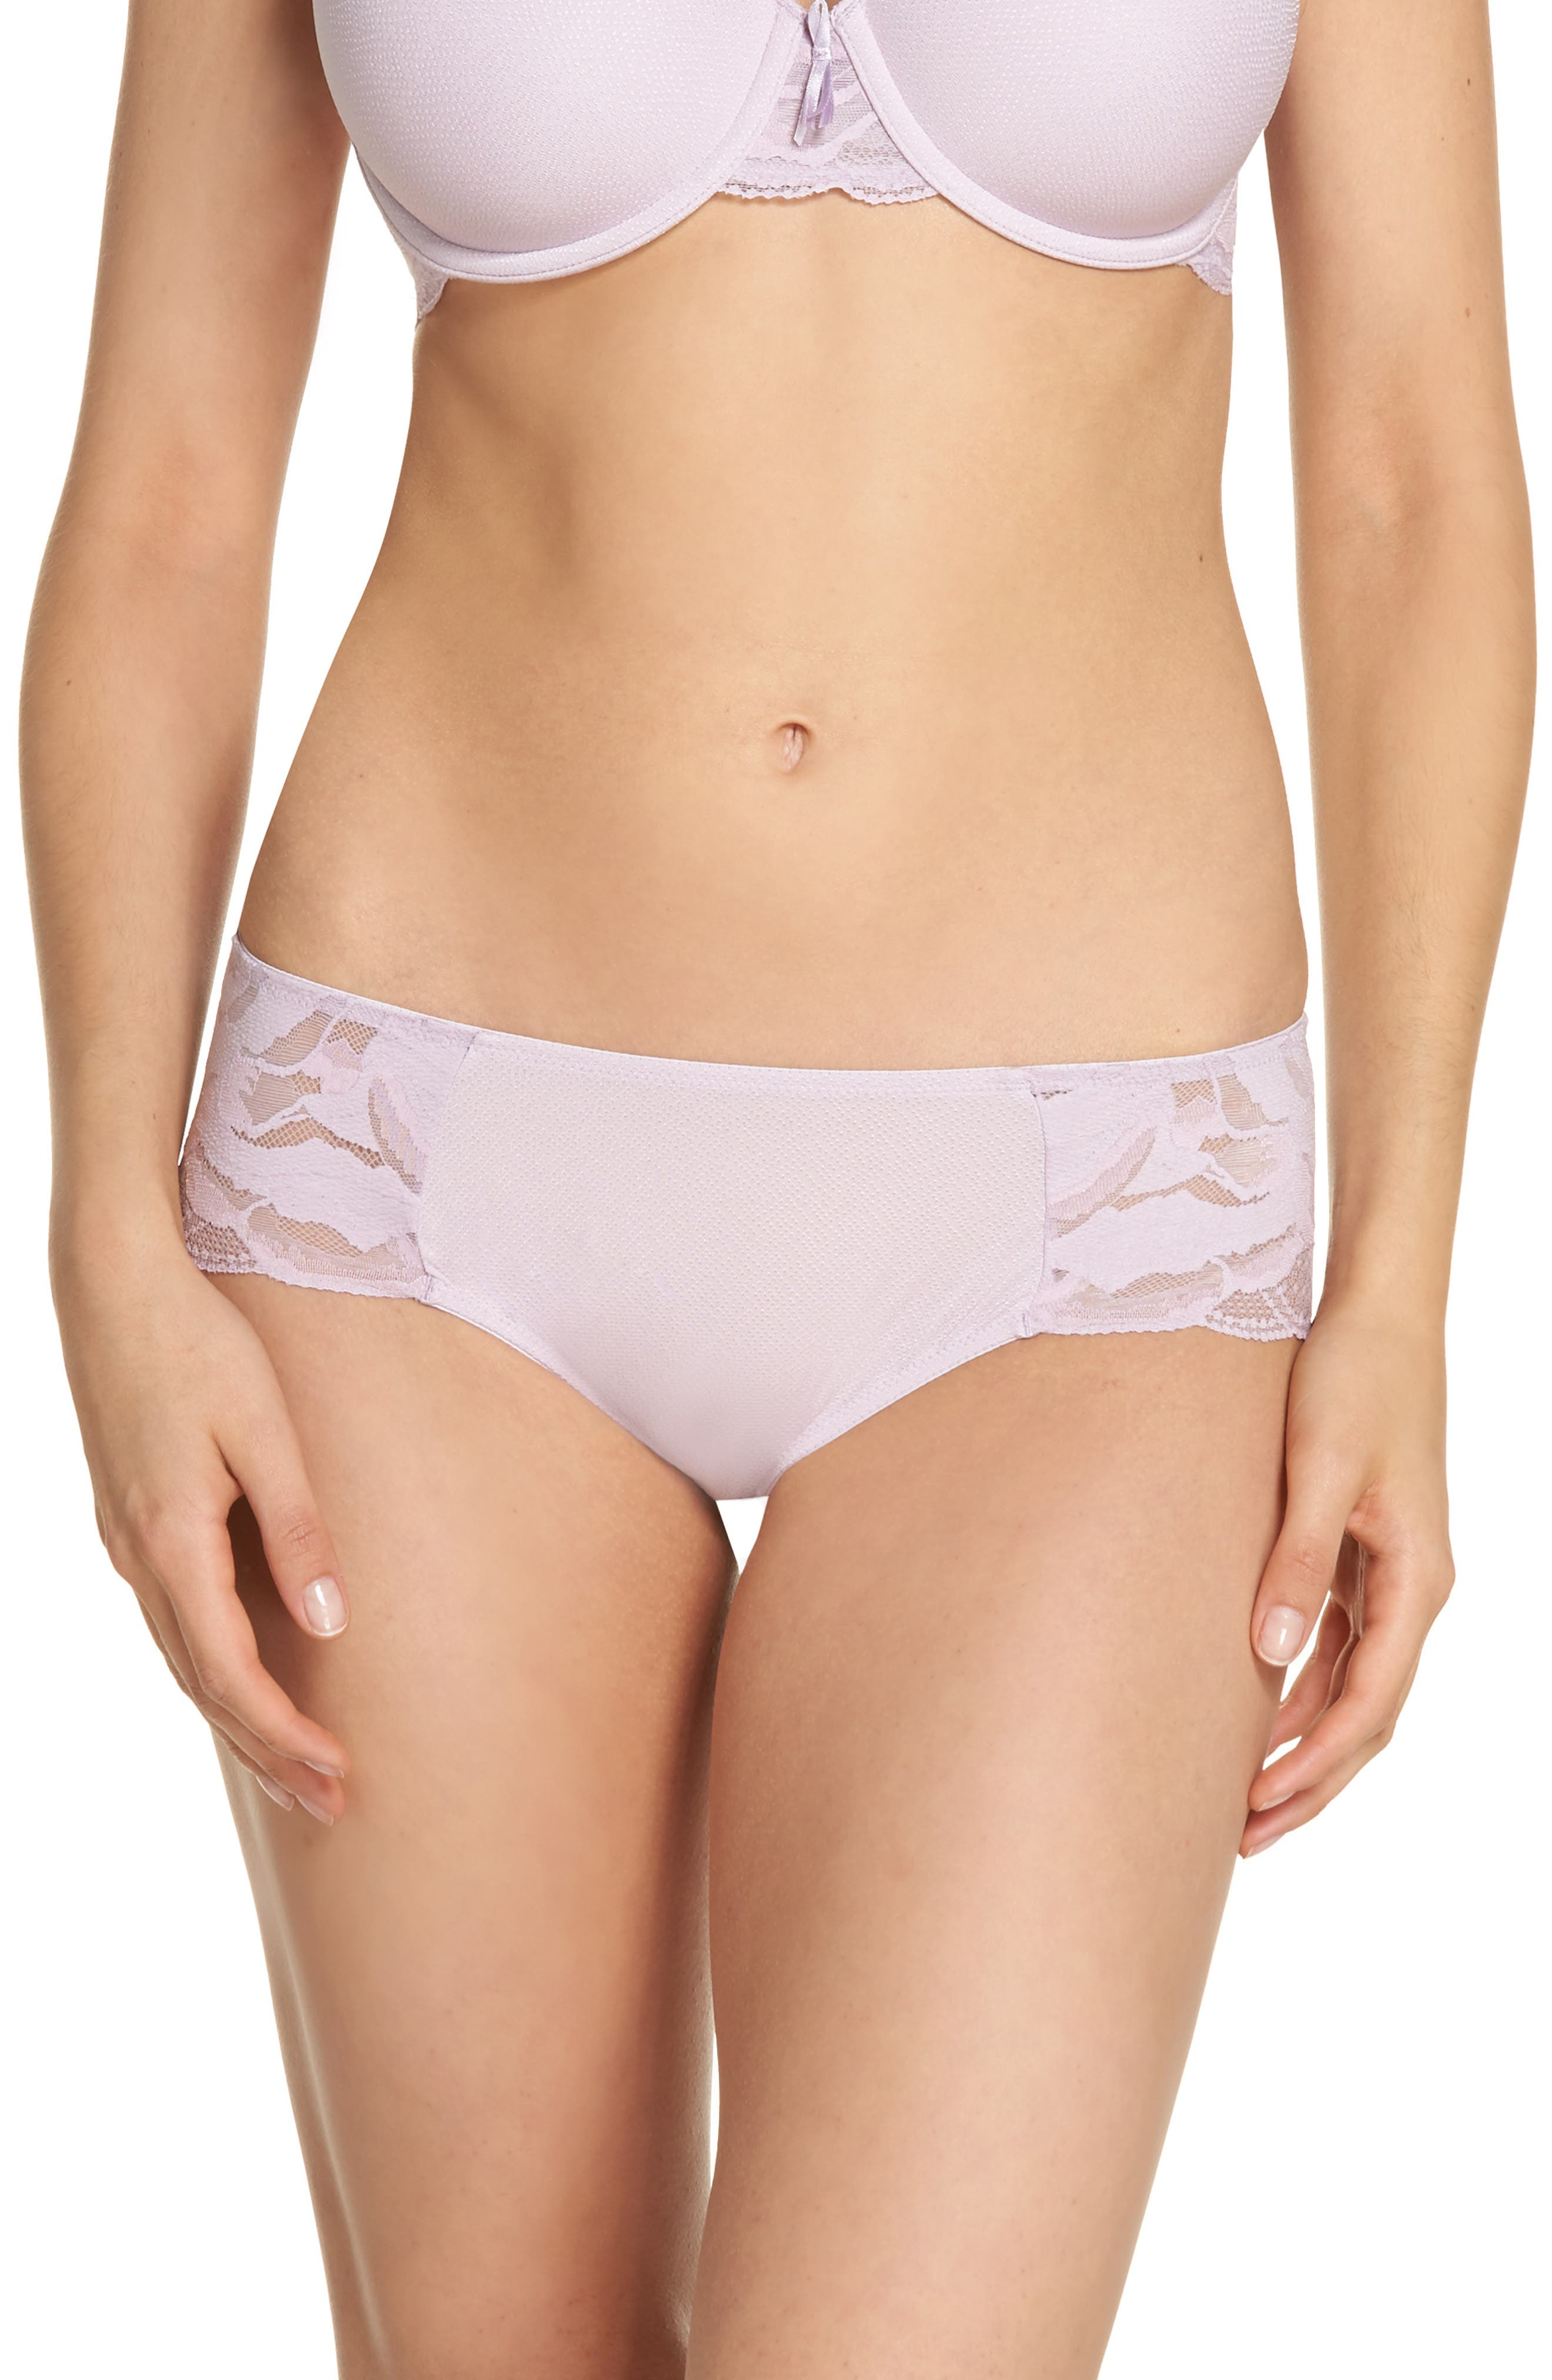 Hipster Top Tier Panties,                             Main thumbnail 1, color,                             Lavender Frost